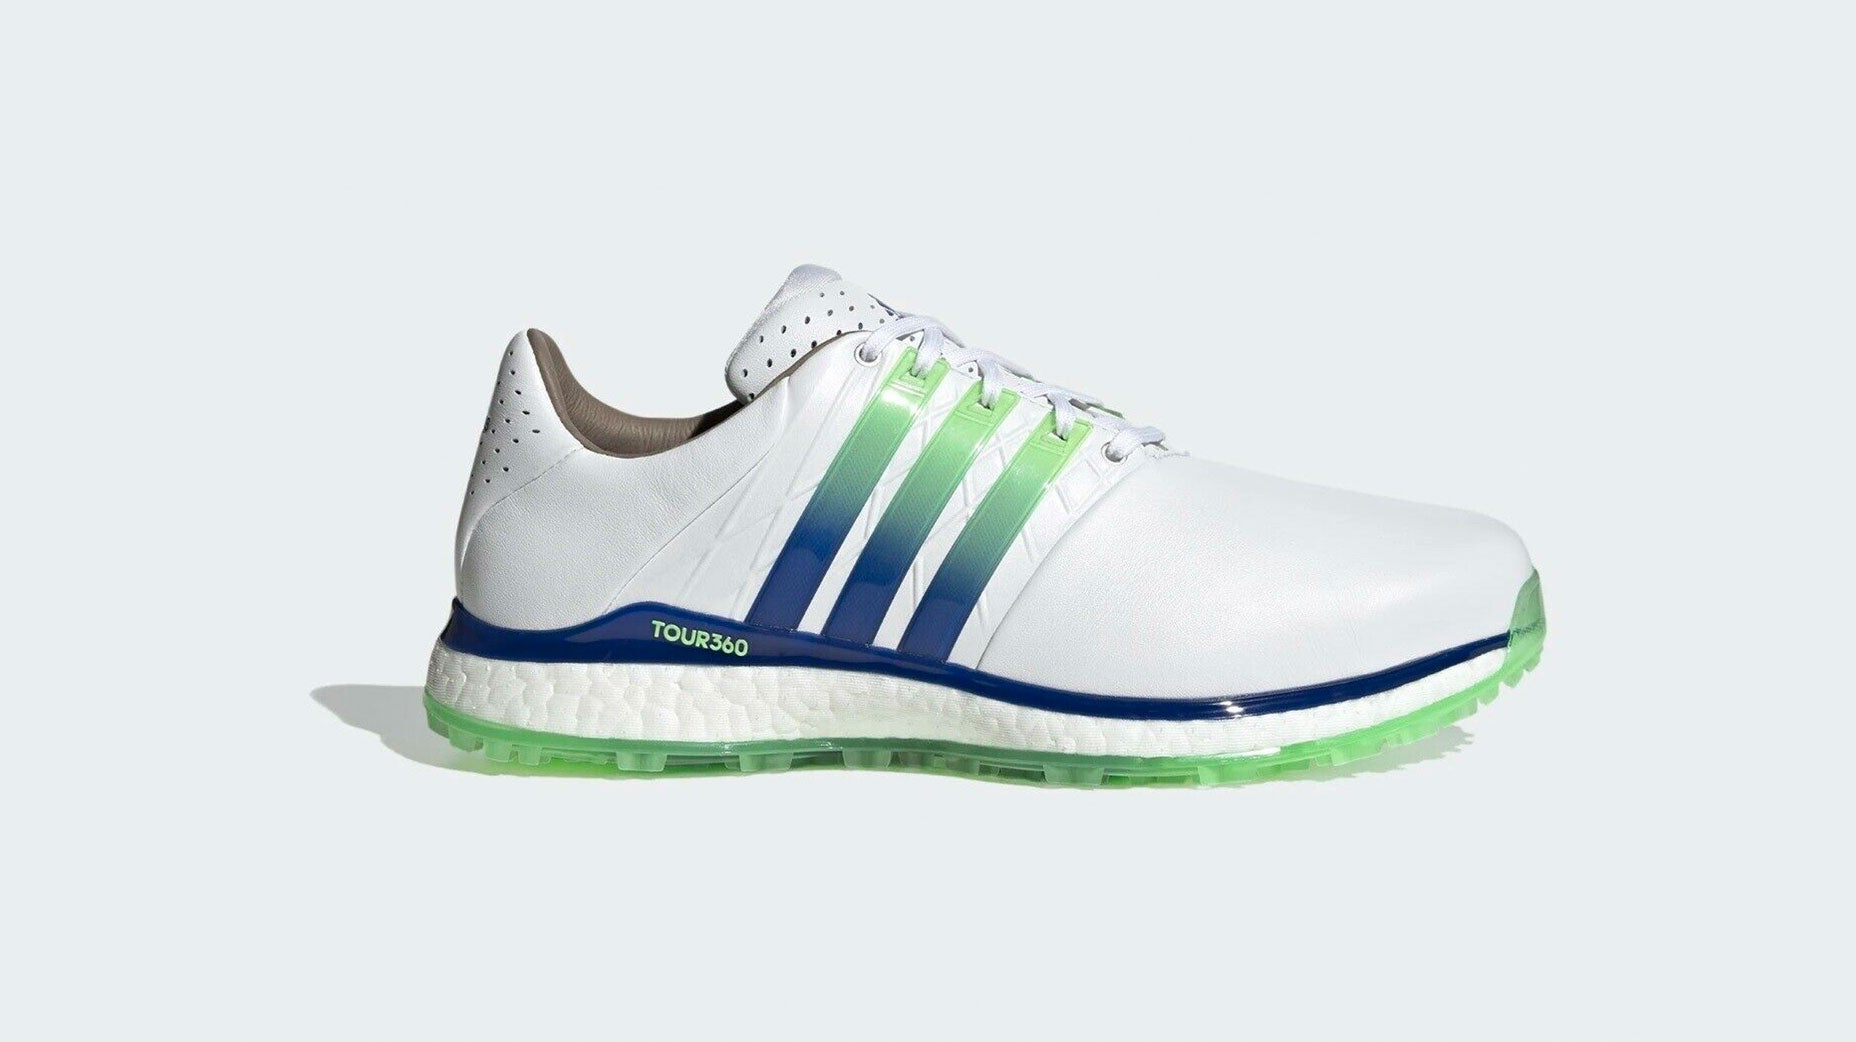 menta sello petrolero  One thing to buy this week: Adidas Tour360 XT-SL 2 spikeless golf shoes